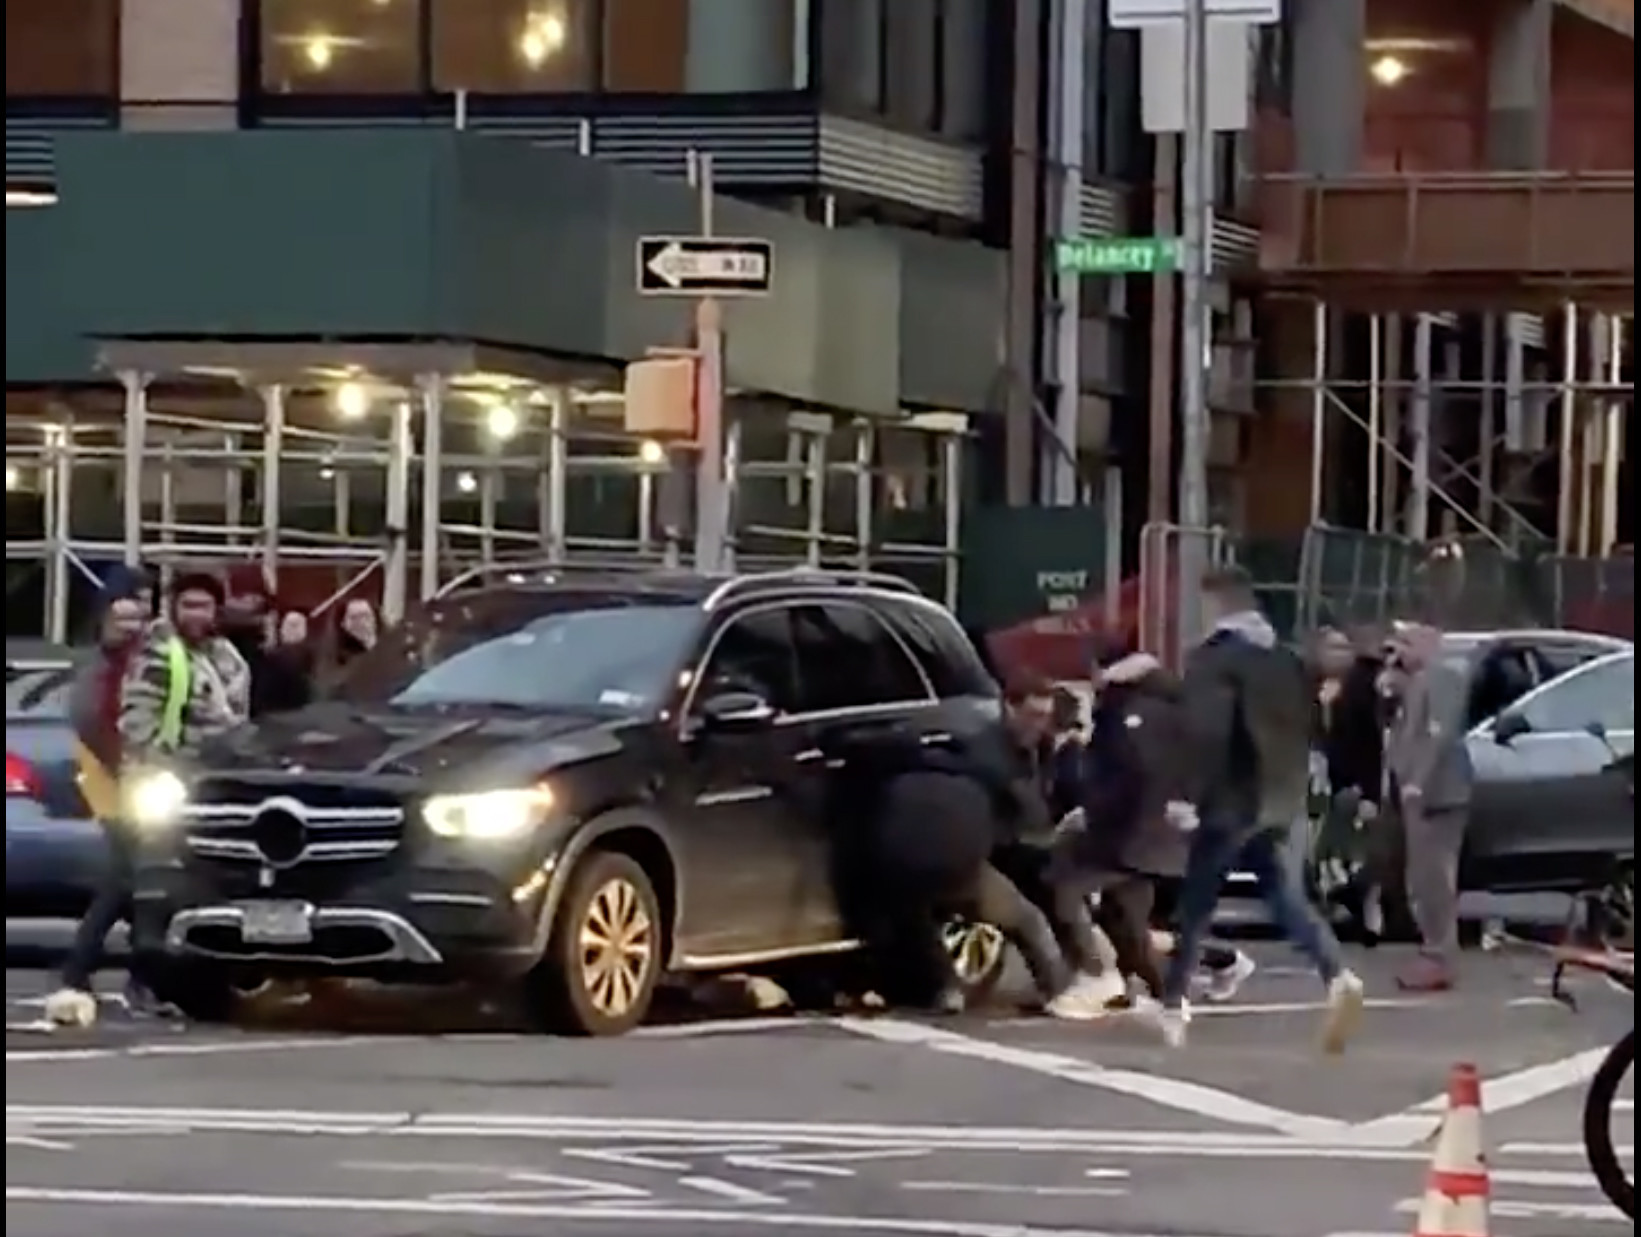 SEE IT: Manhattan bystanders lift SUV to free woman pinned underneath